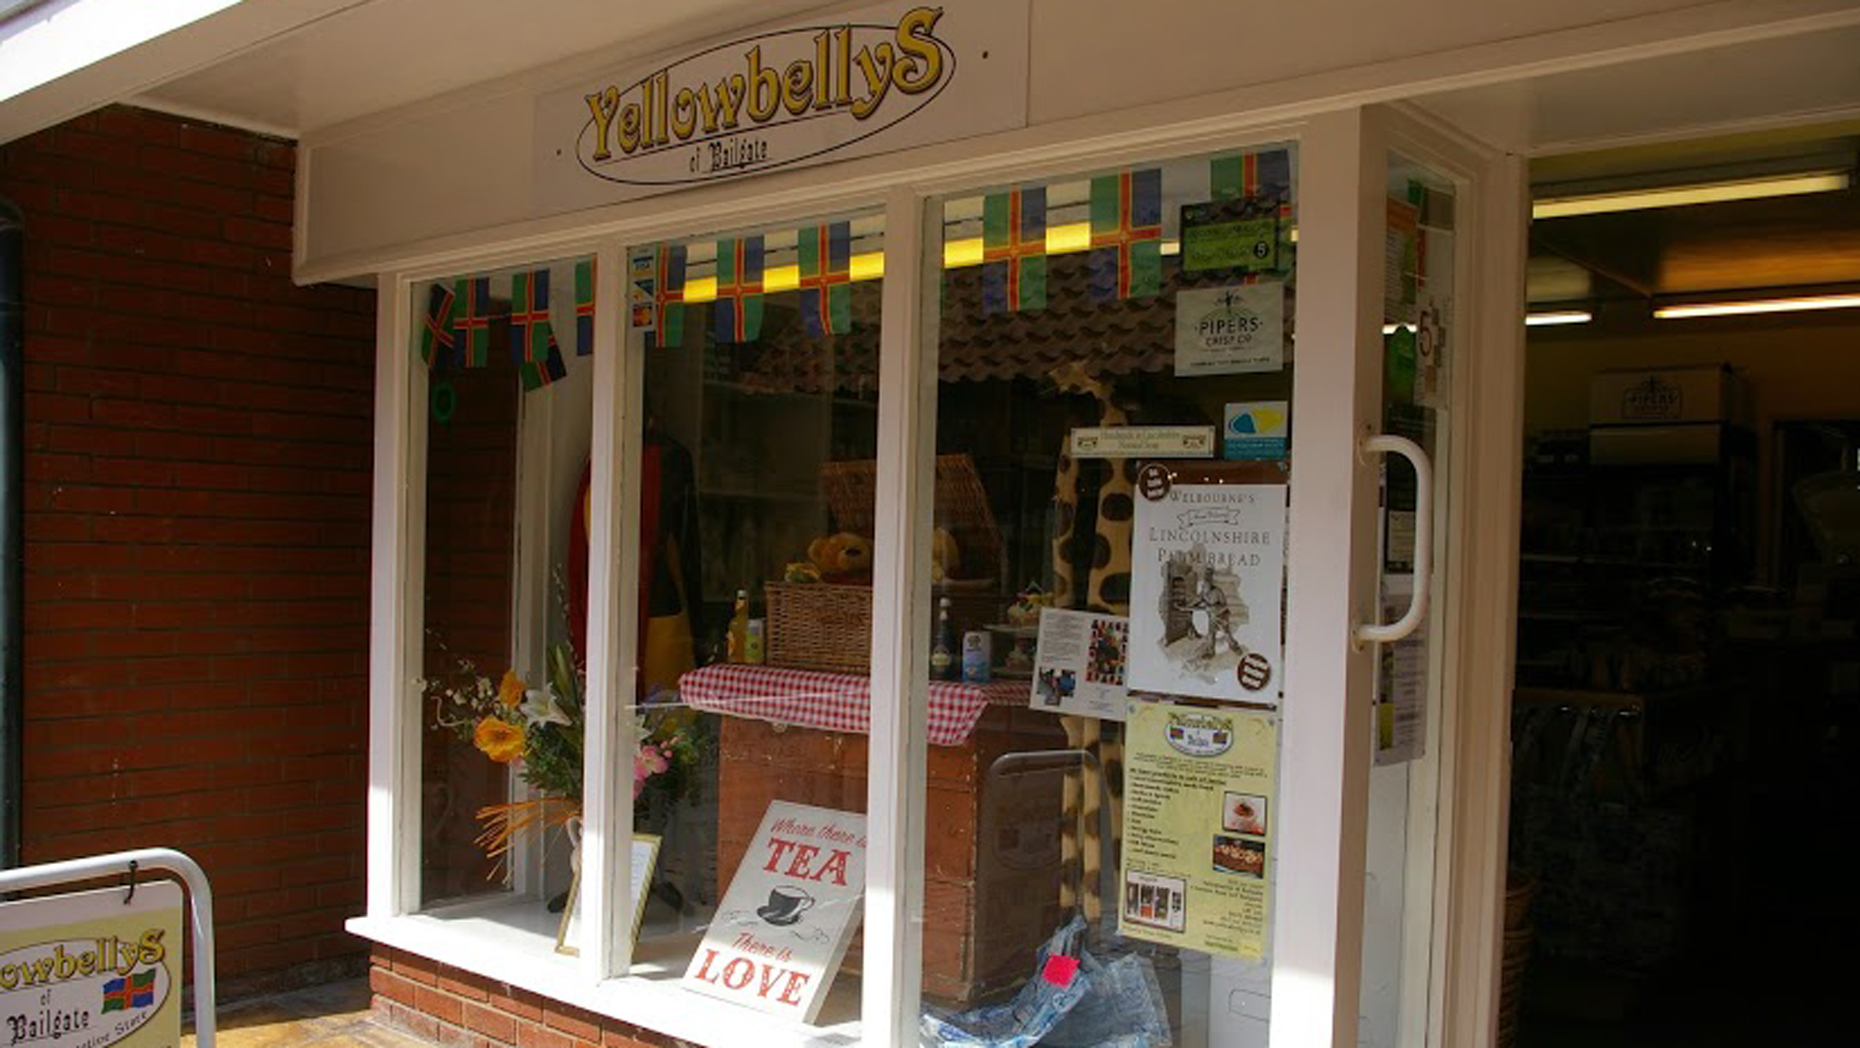 216a667d750b9 Lincoln Yellowbellys store to become vegetarian café